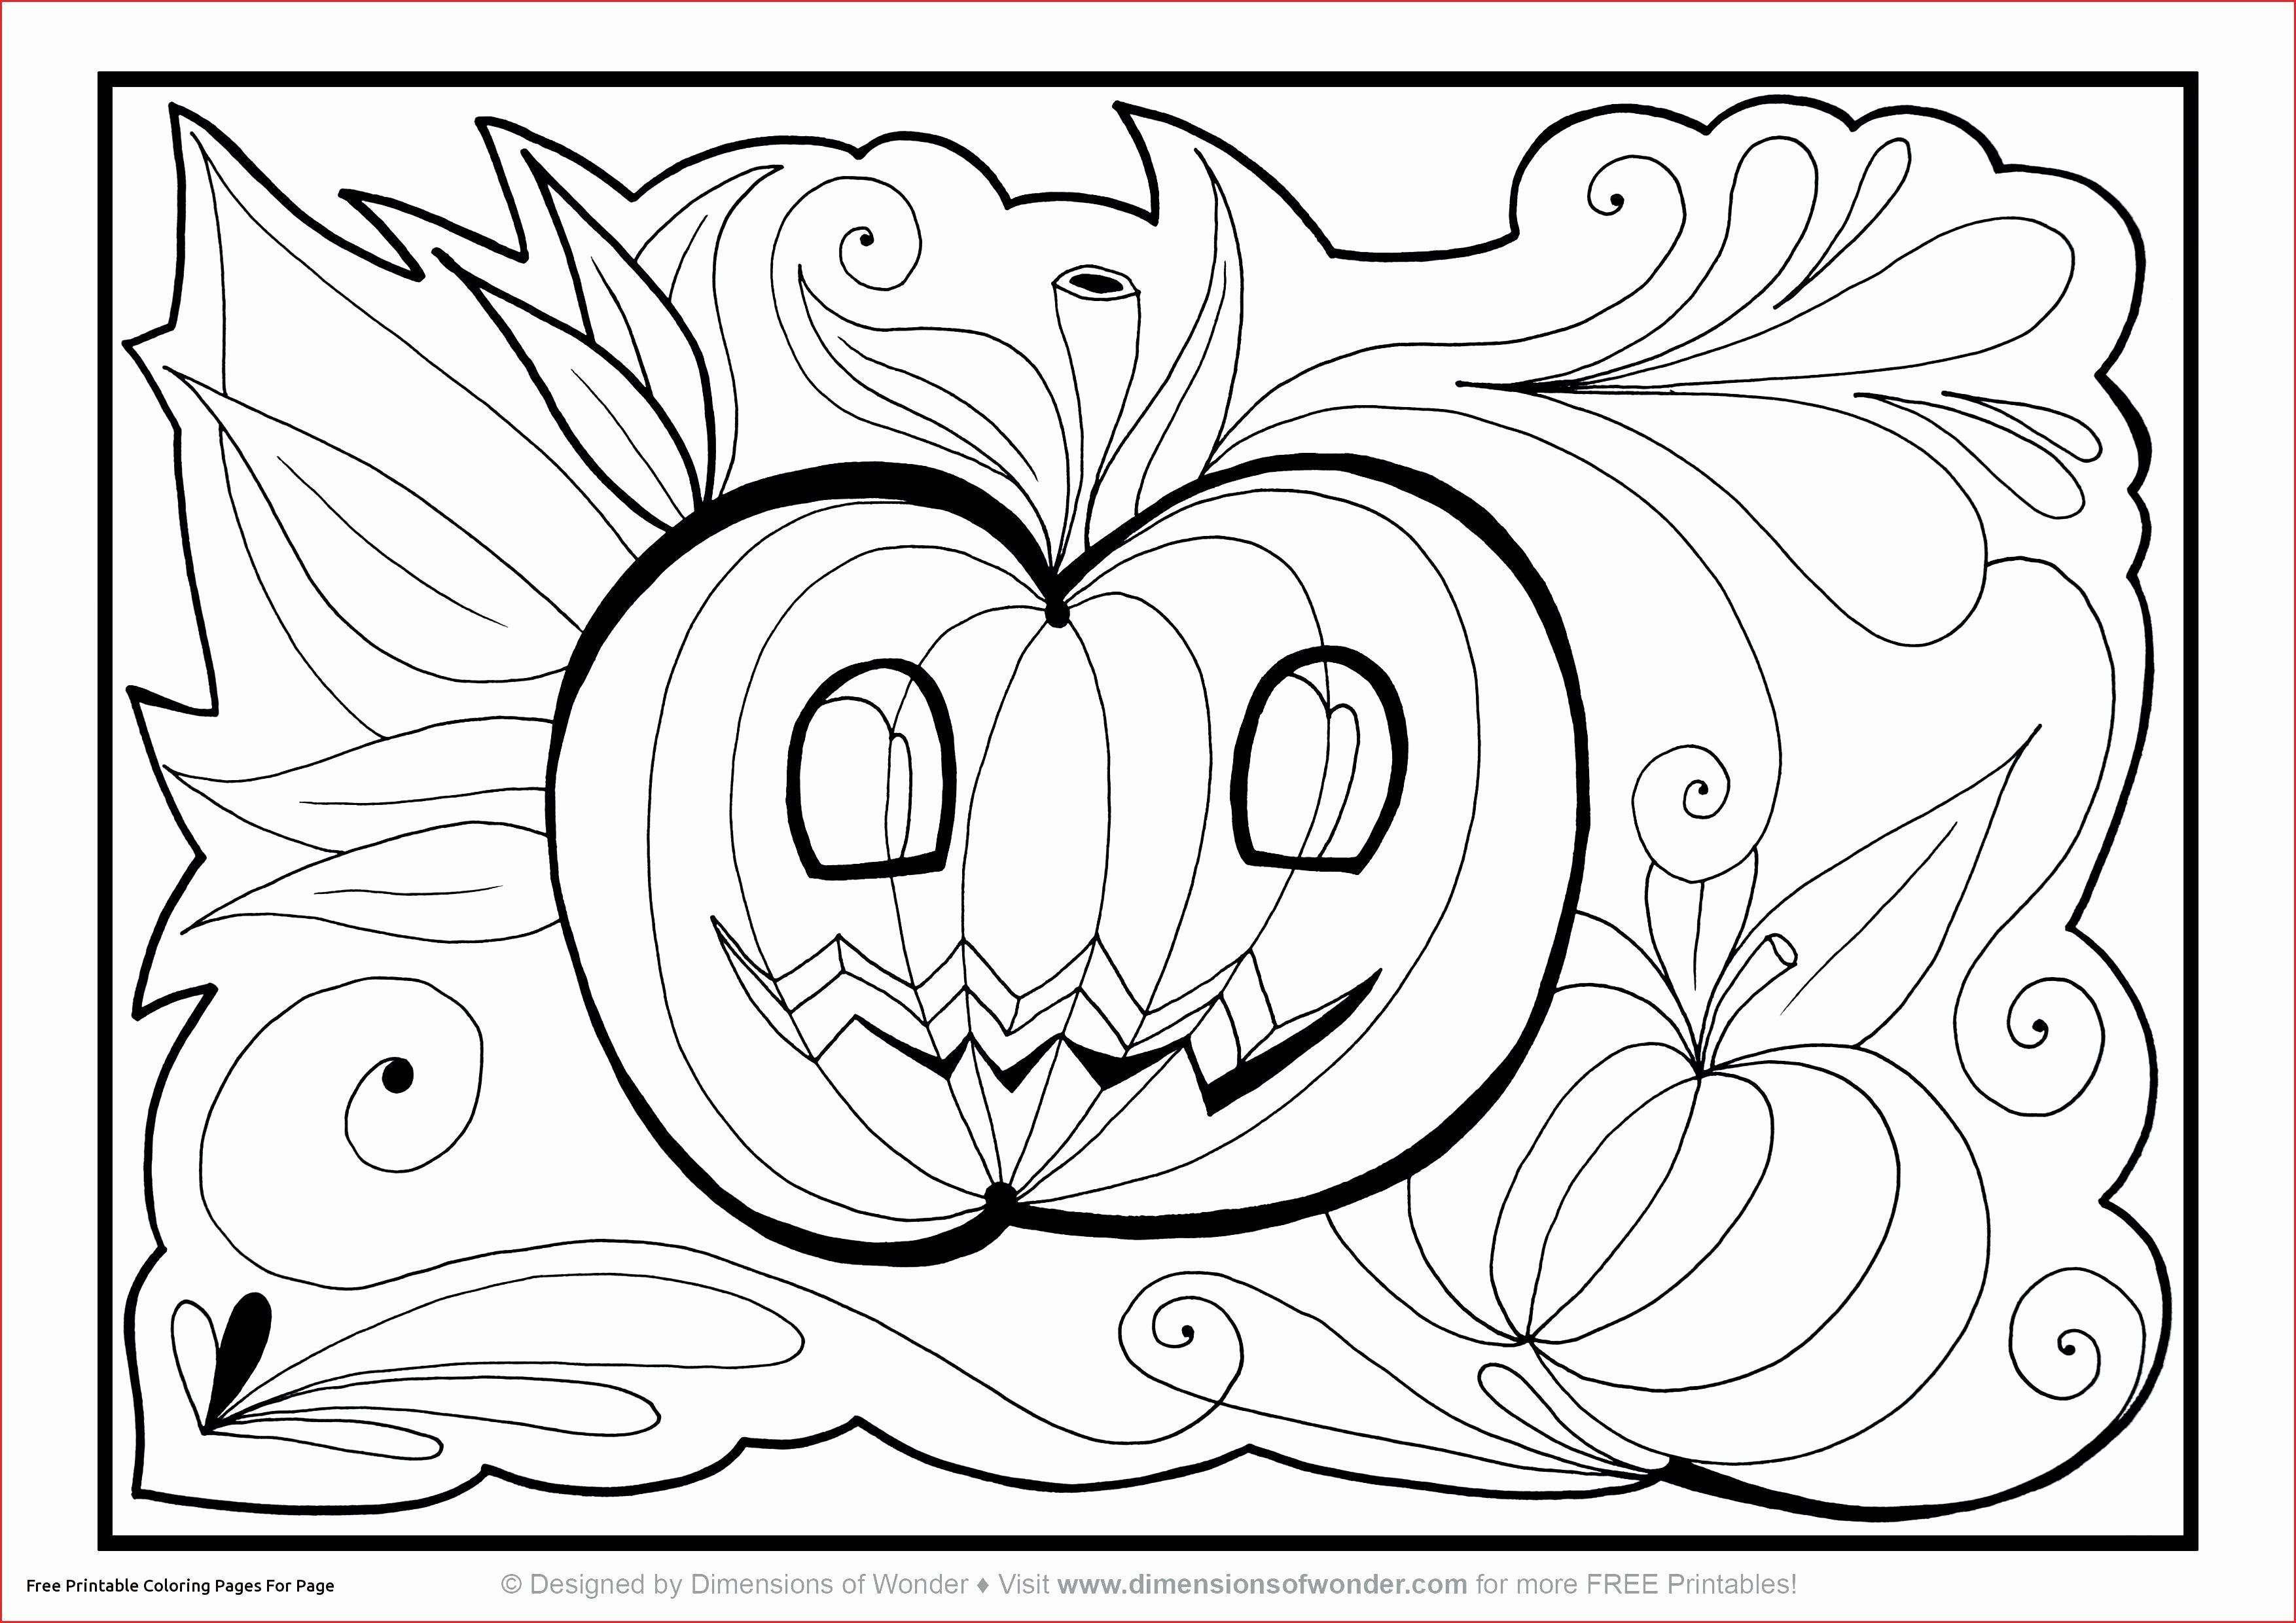 Printable Adult Coloring Pages Free